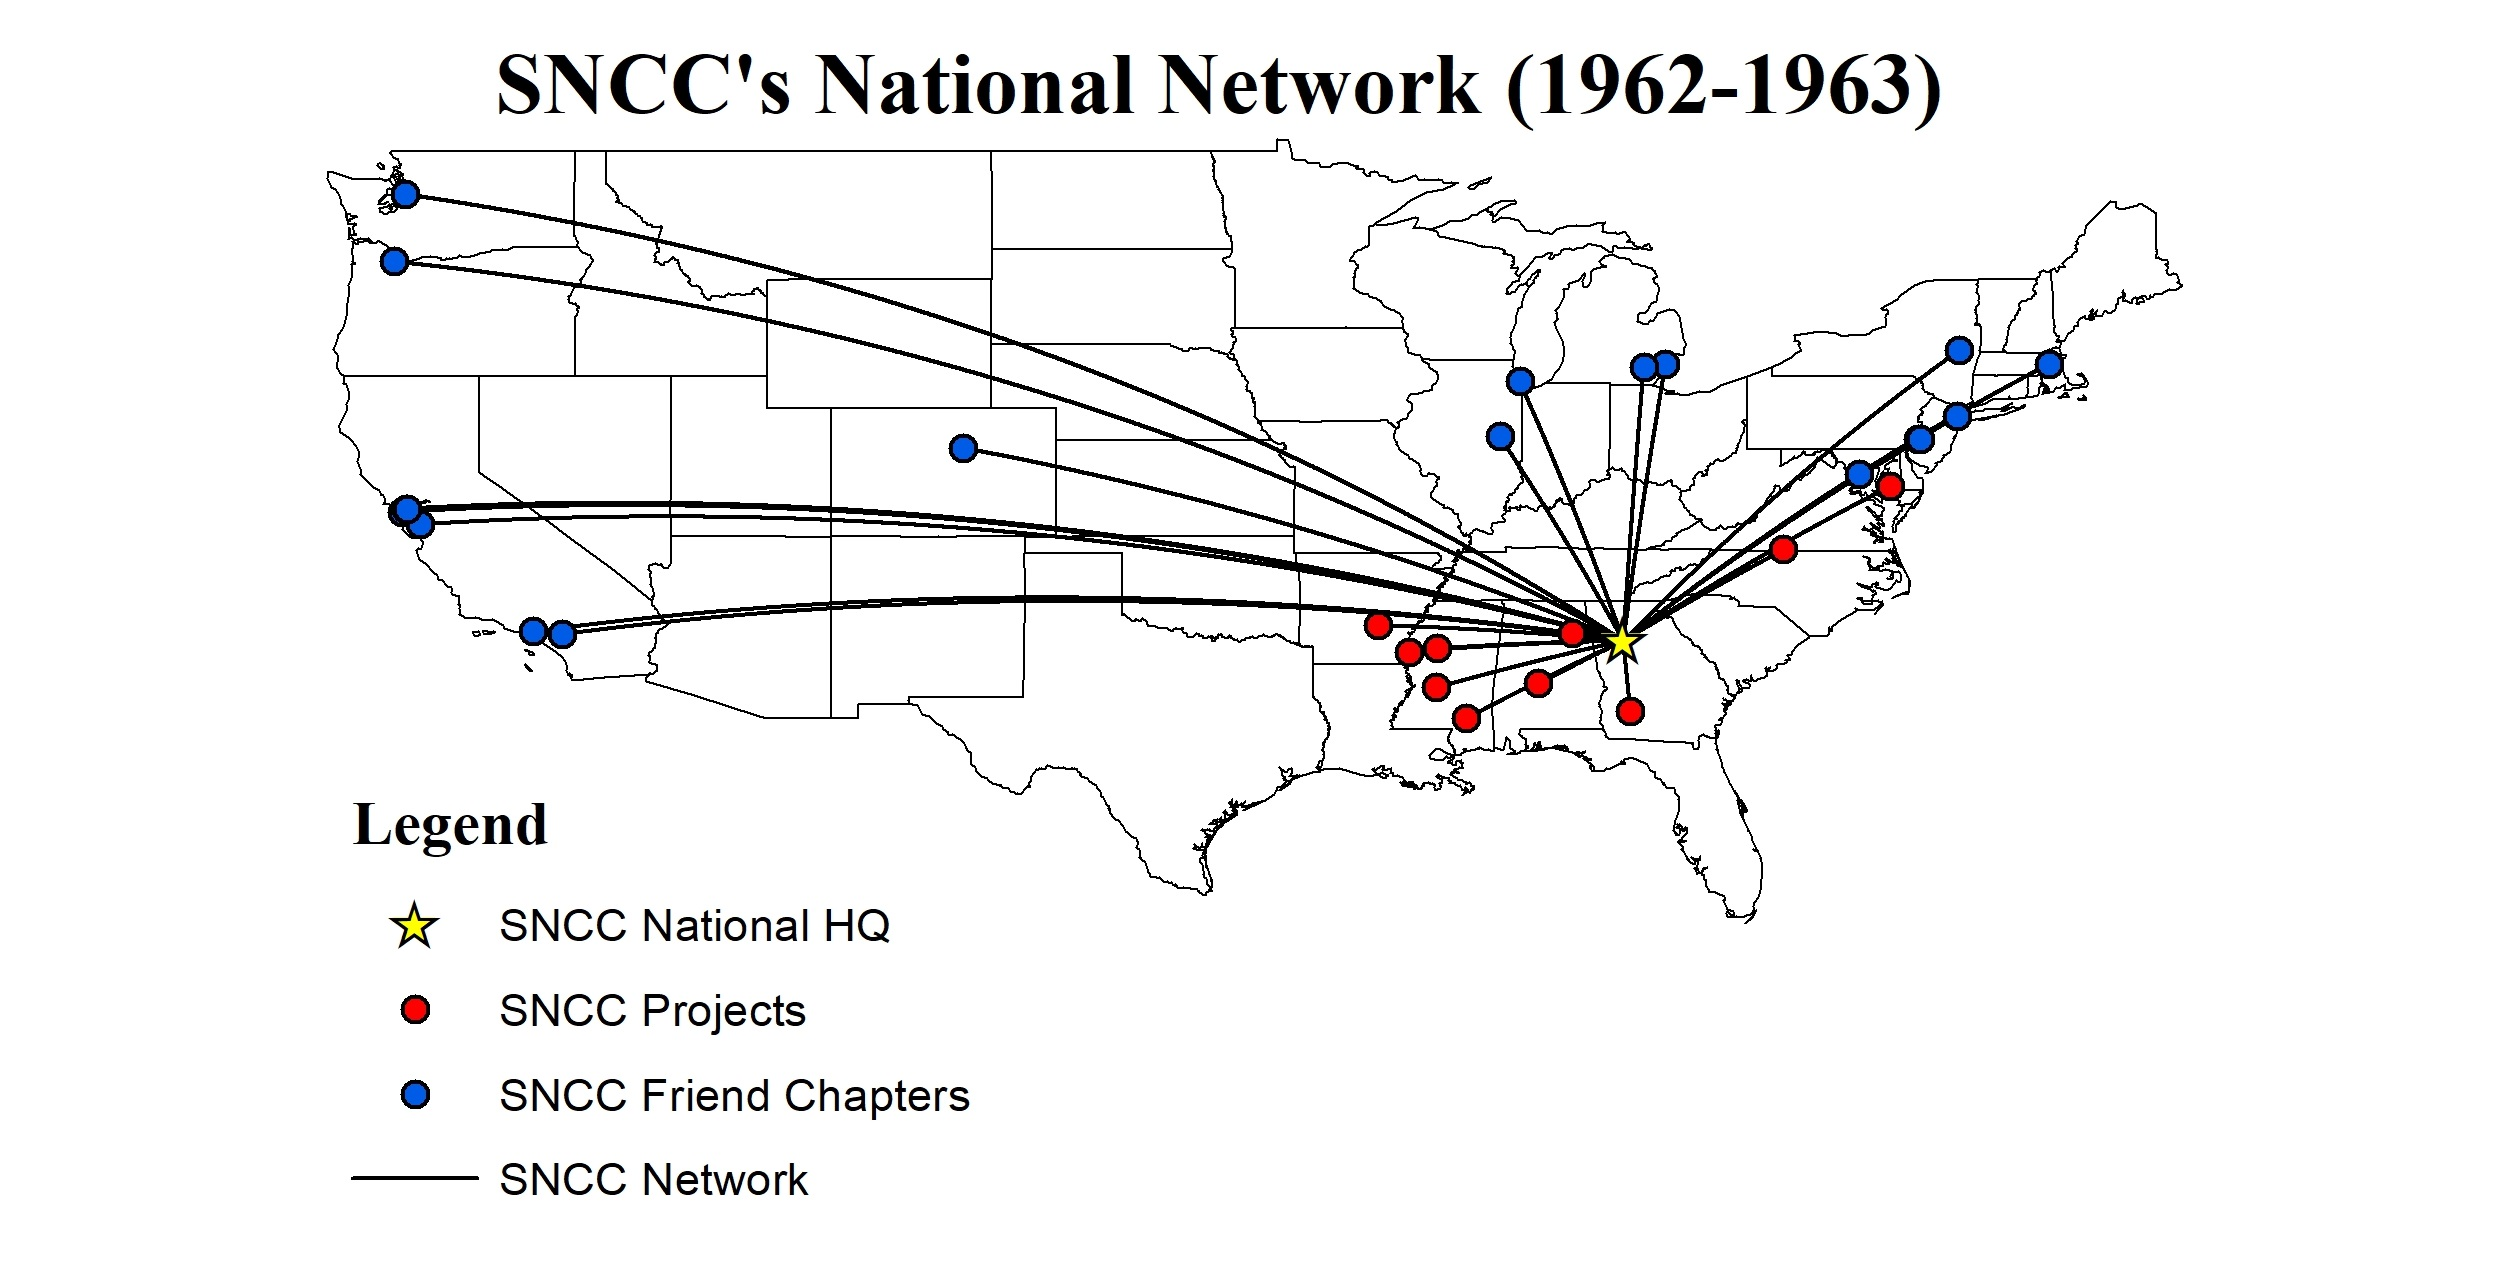 Map of the United States, showing the locations of SNCC Projects (in the south) and SNCC Friends Chapters (in the North), in relation to the national headquarters in Atlanta.